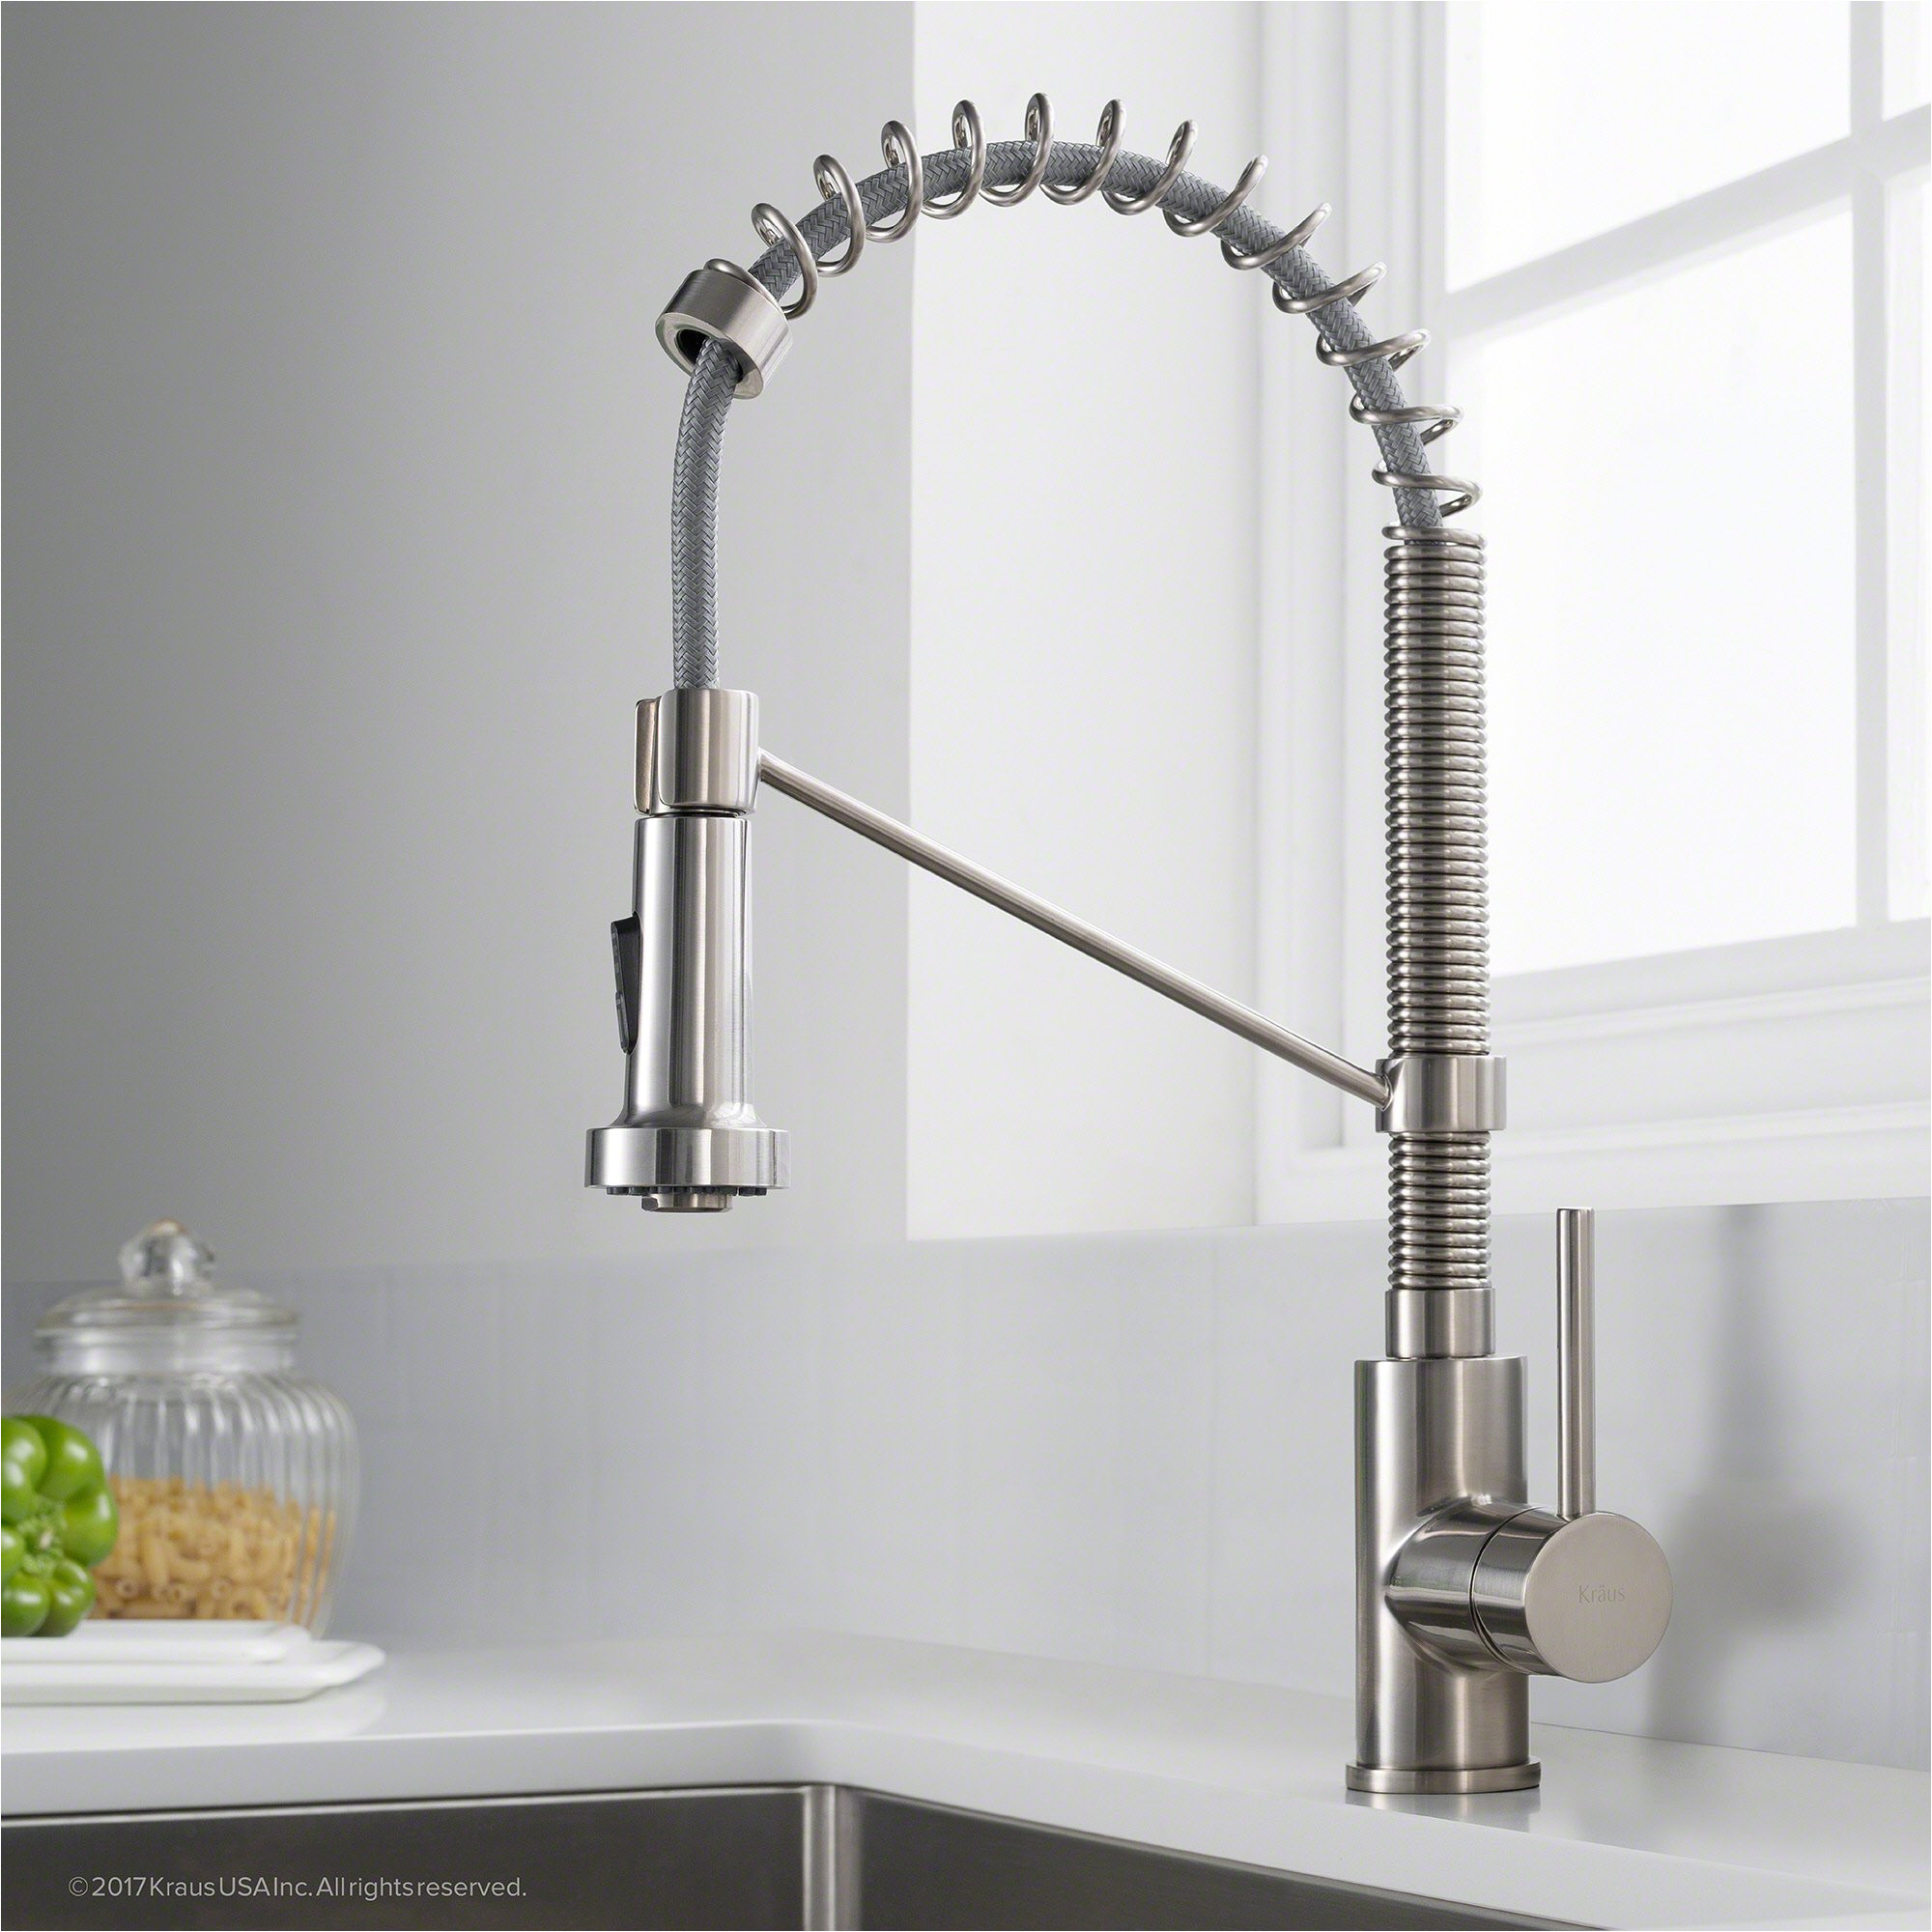 kraus kpf 1610ss bolden single handle 18 inch commercial kitchen faucet with dual function pull down spray head finish kpf 1610ss stainless steel